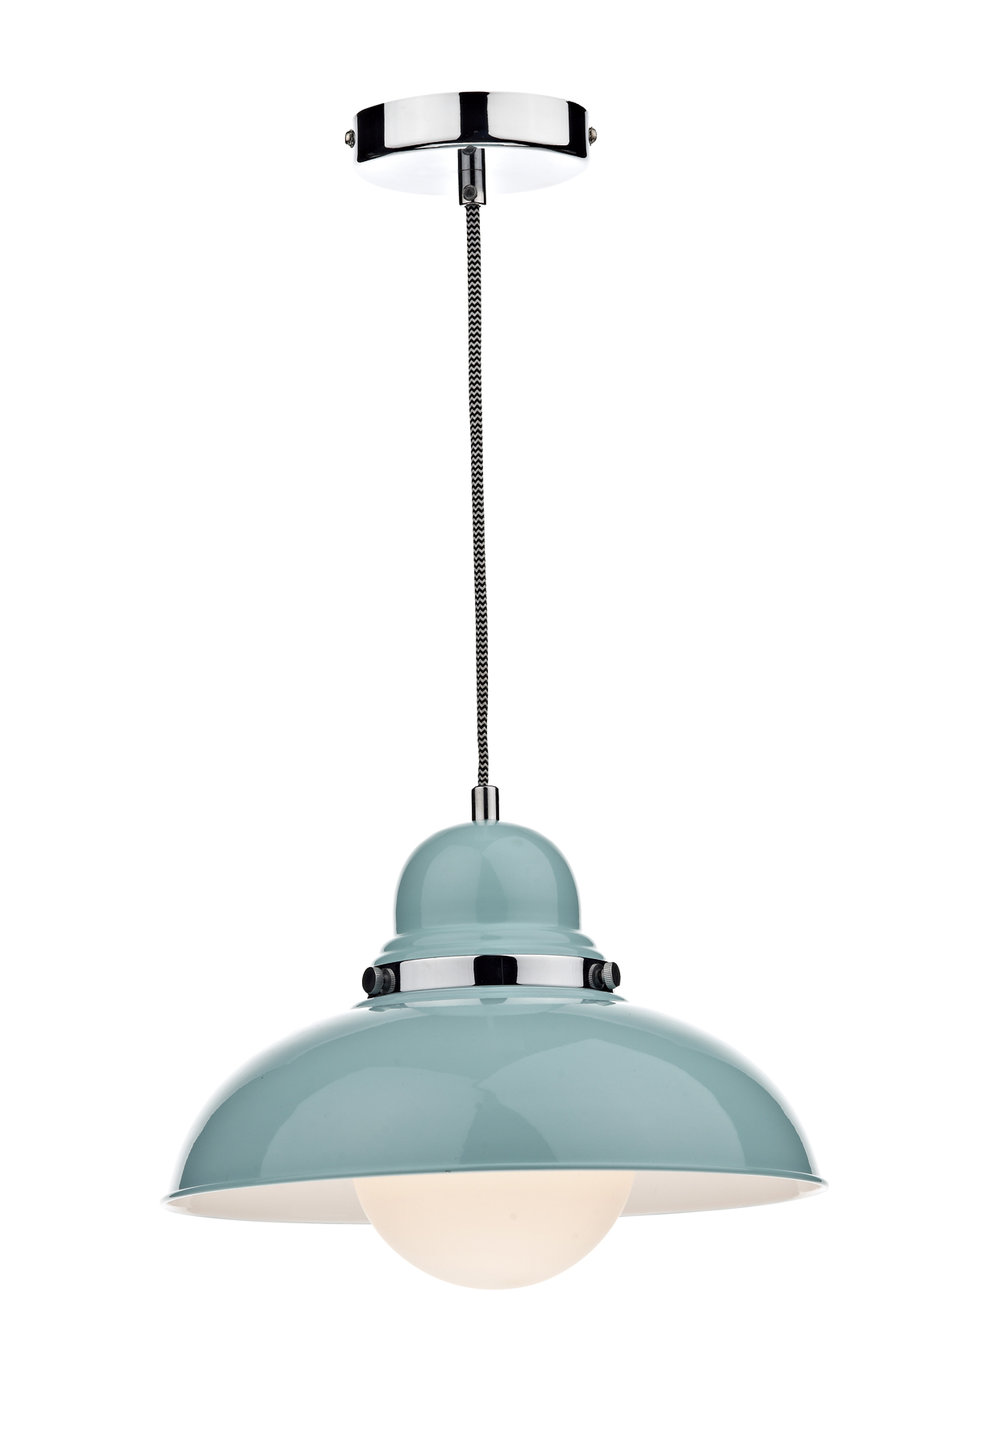 Dynamo Single Ceiling Light Pendant Blue By Brewers Home Brewers Home - Kitchen pendant lighting blue